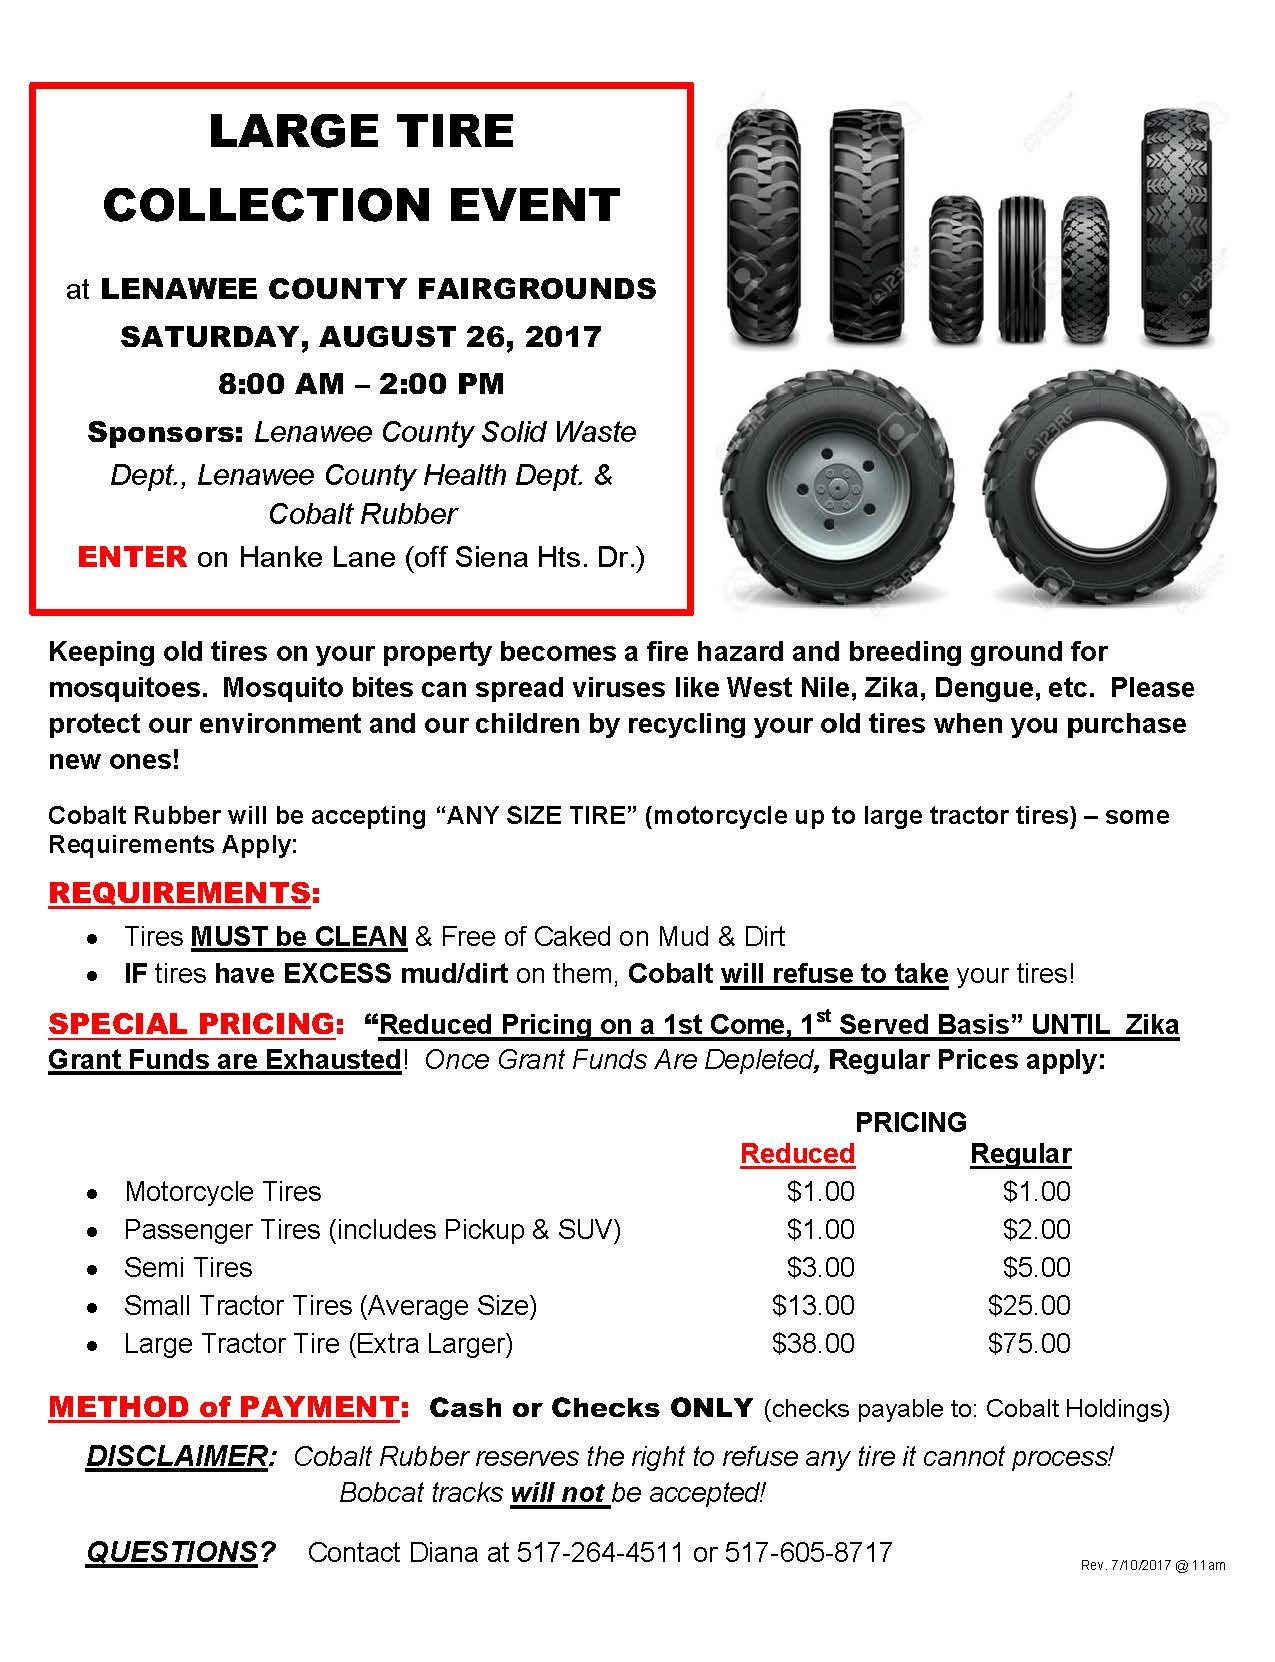 LG TIRE EVENT